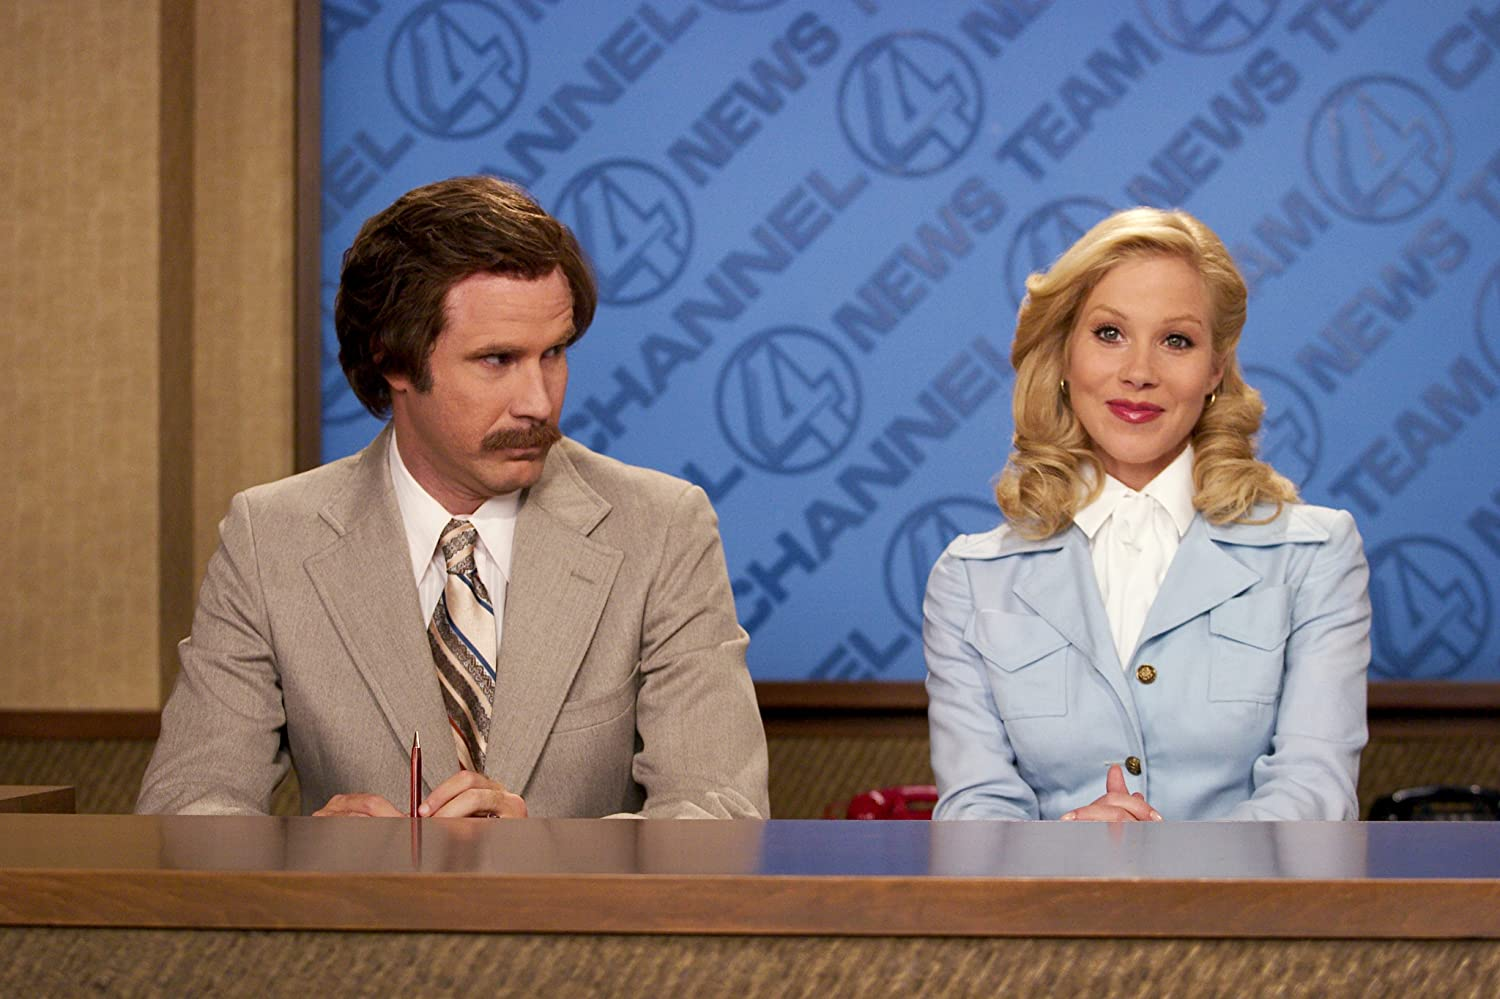 Christina Applegate and Will Ferrell in Anchorman: The Legend of Ron Burgundy (2004)